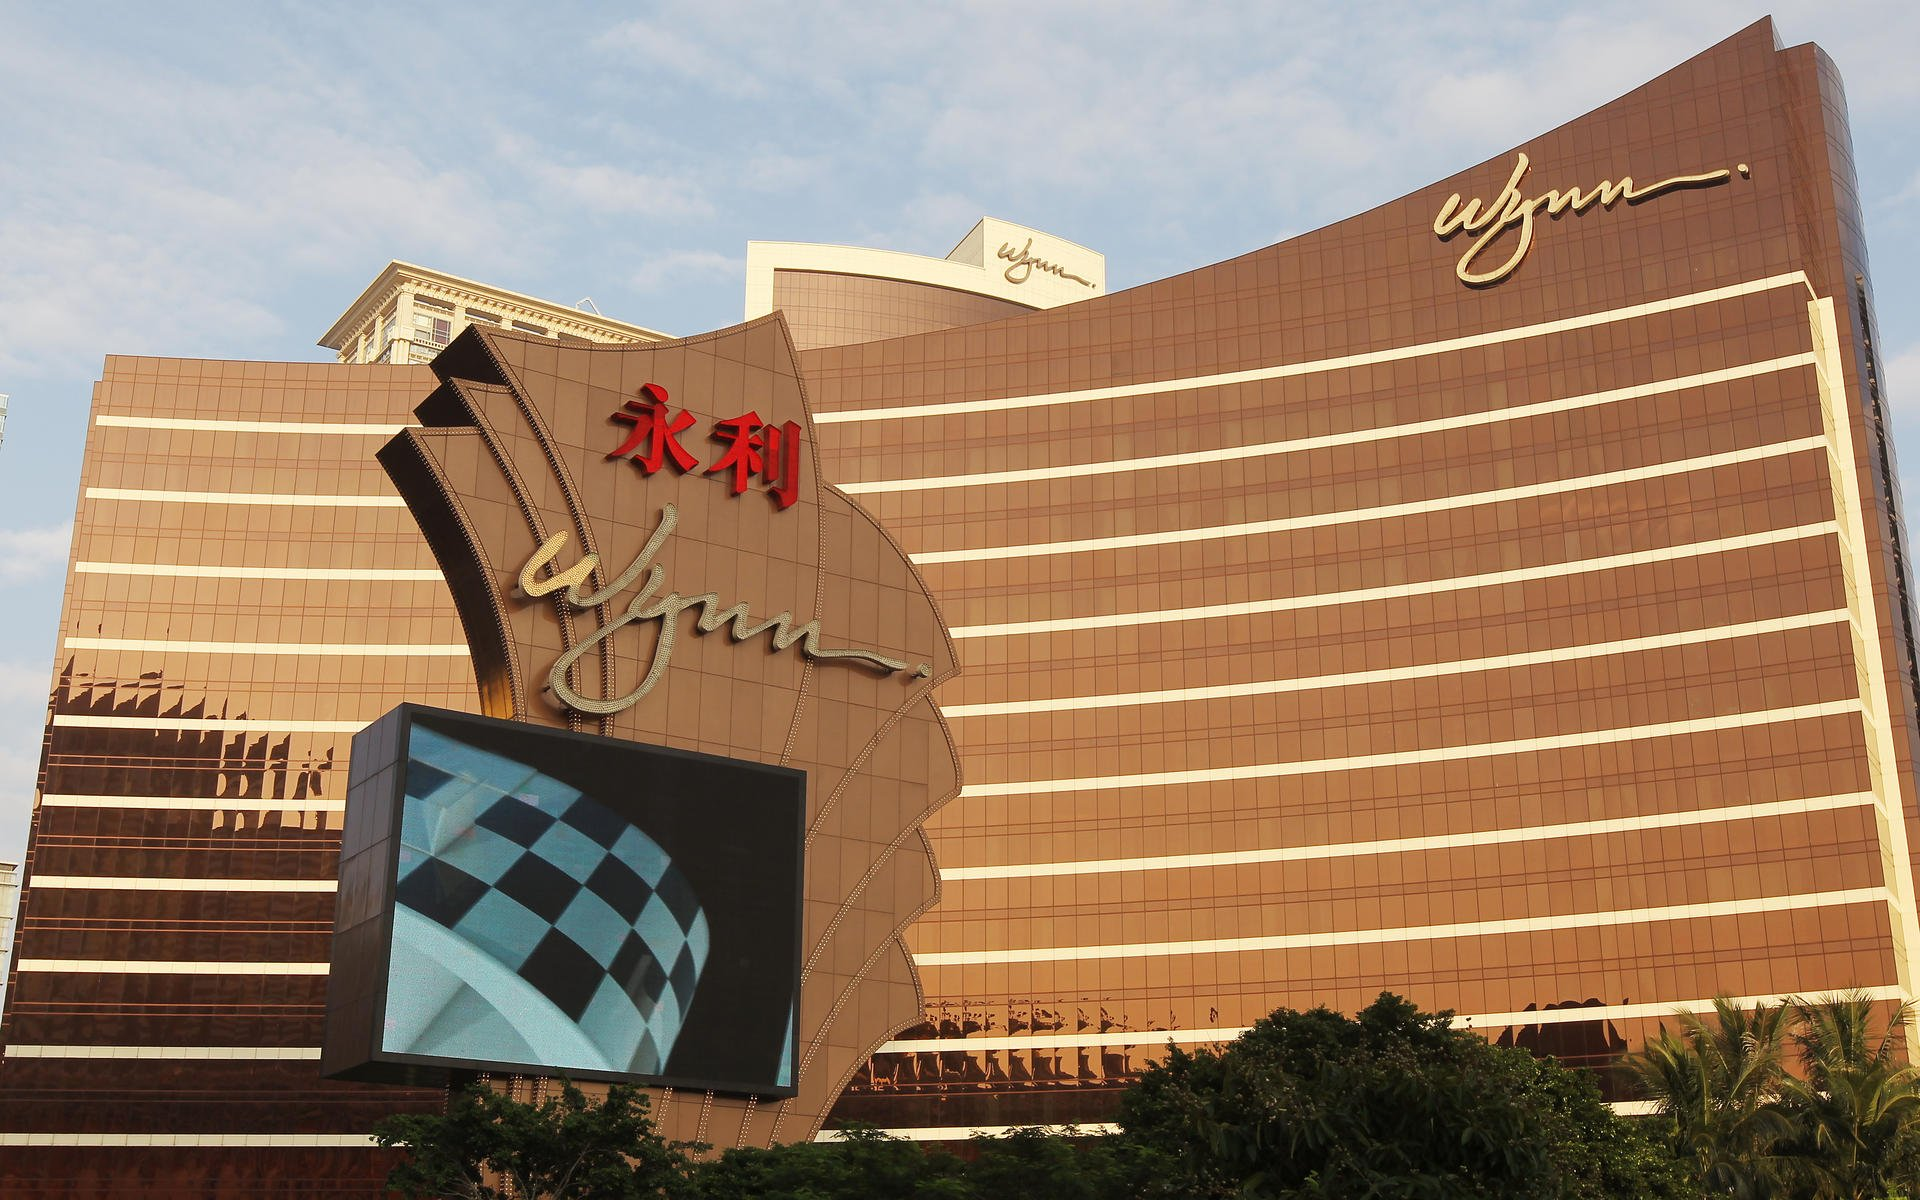 Wynn May Lead Rebound, Analyst Says